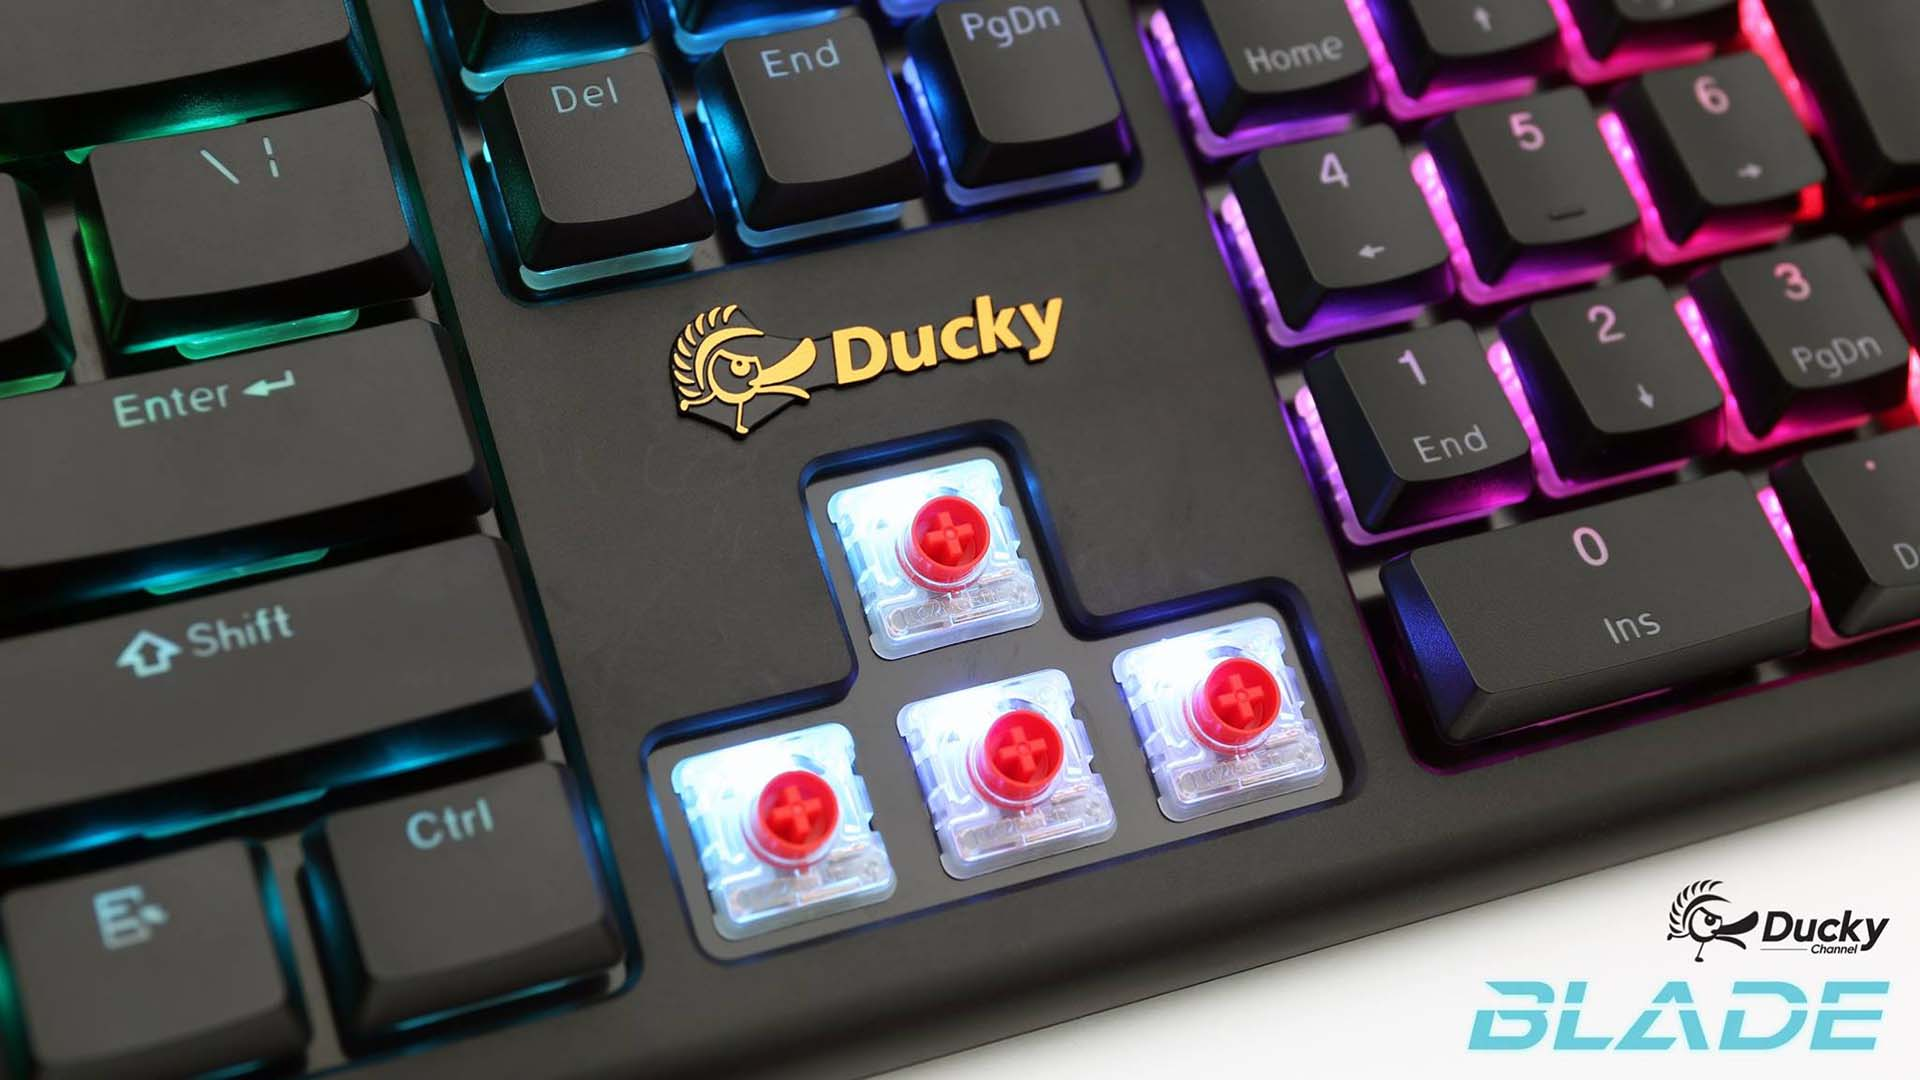 導入藍牙模式,Ducky Blade Air 將使用 Cherry MX Low Profile RGB 紅軸